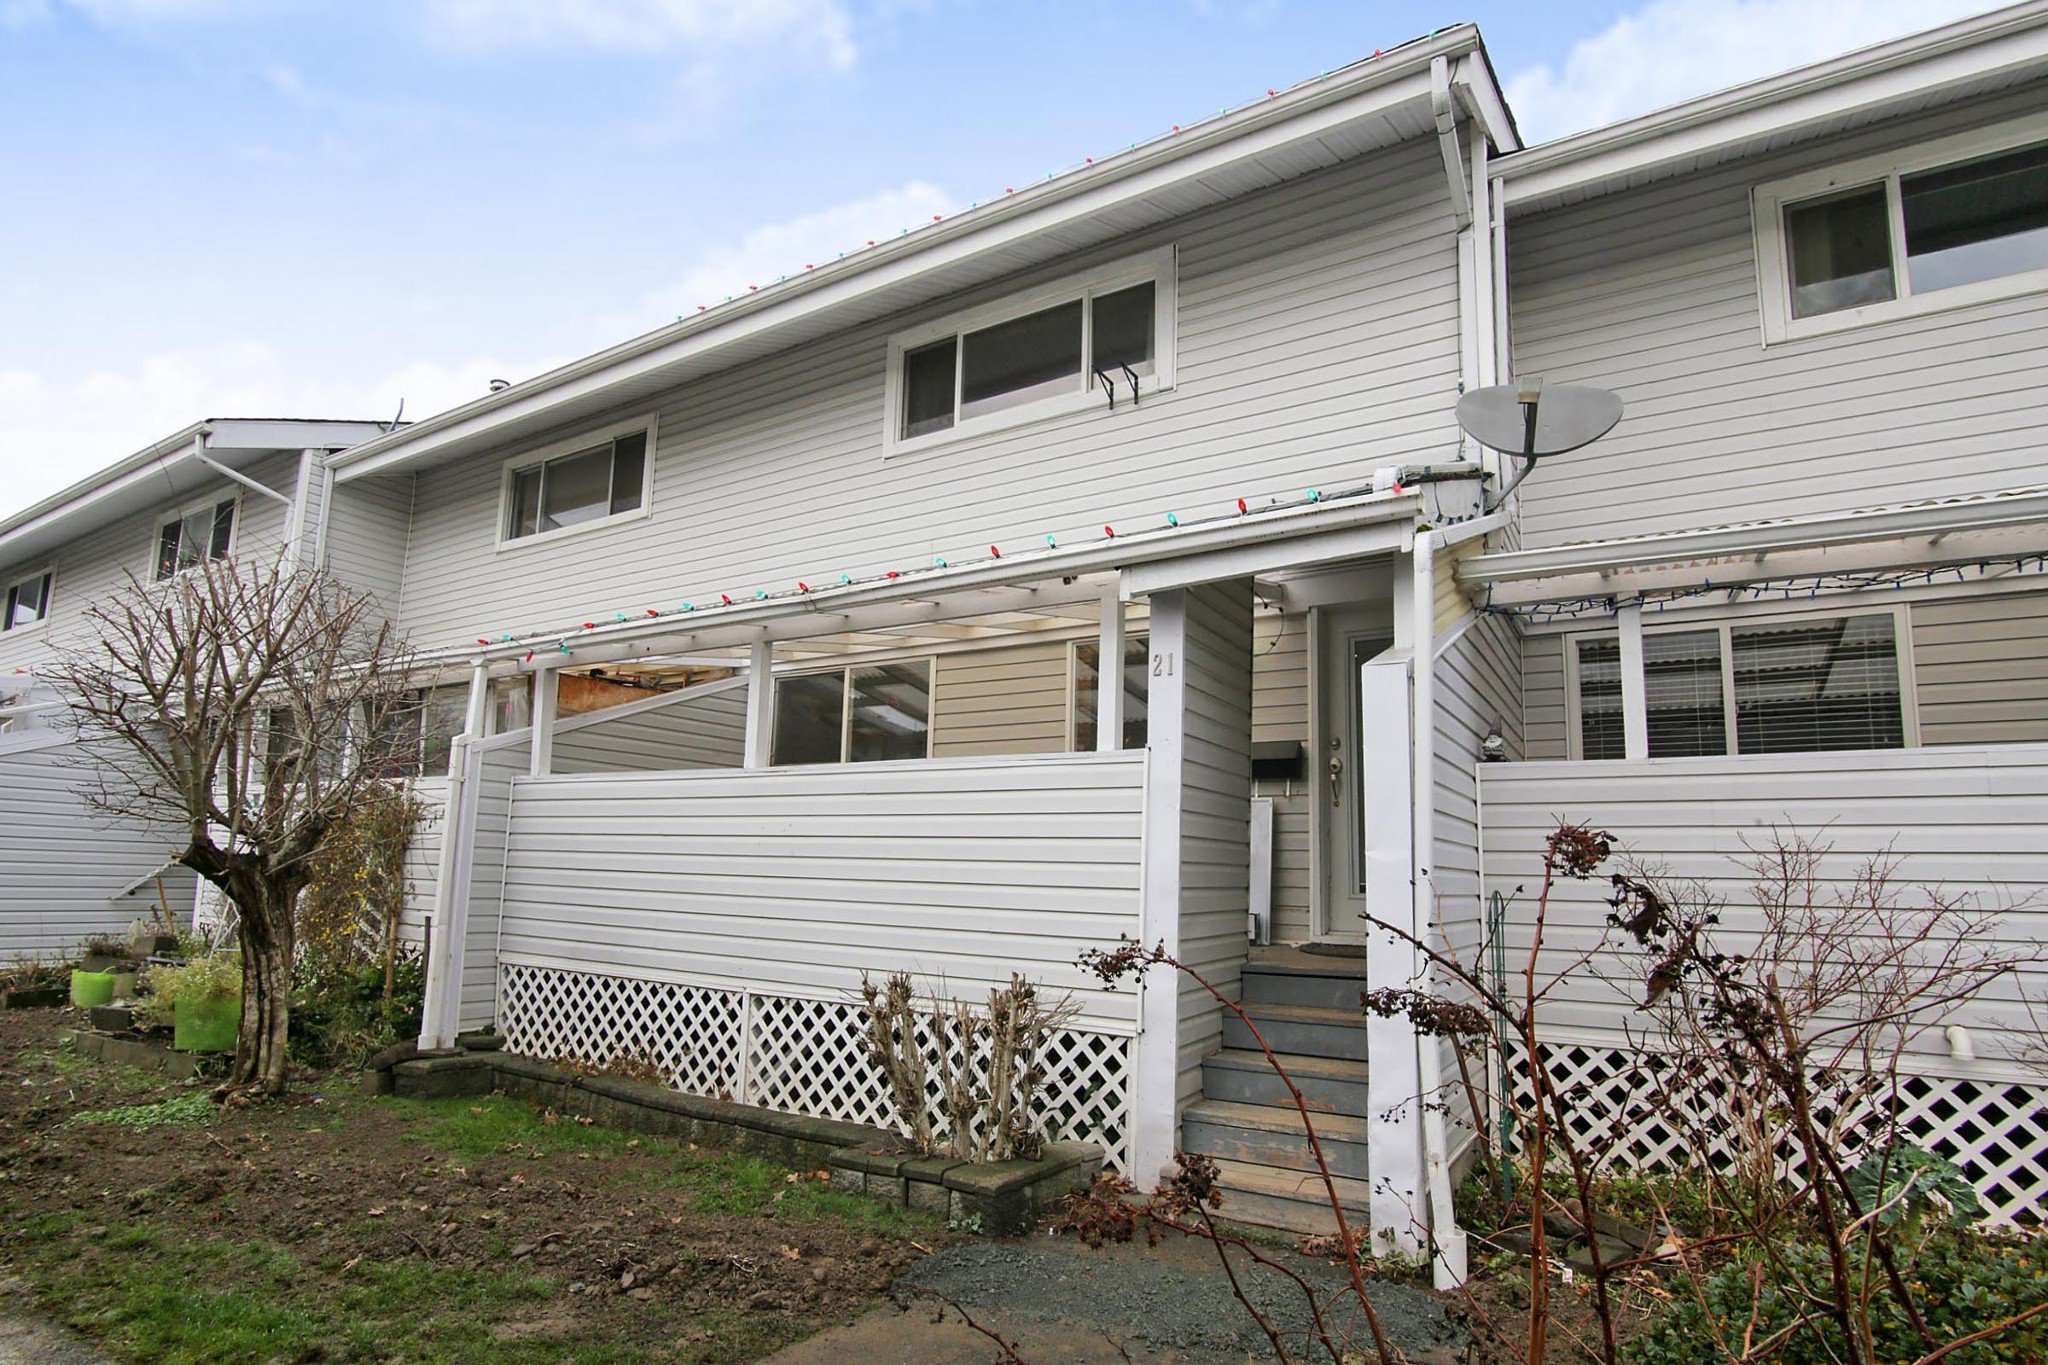 Main Photo: 21 45215 WOLFE Road in Chilliwack: Chilliwack W Young-Well Townhouse for sale : MLS®# R2421121